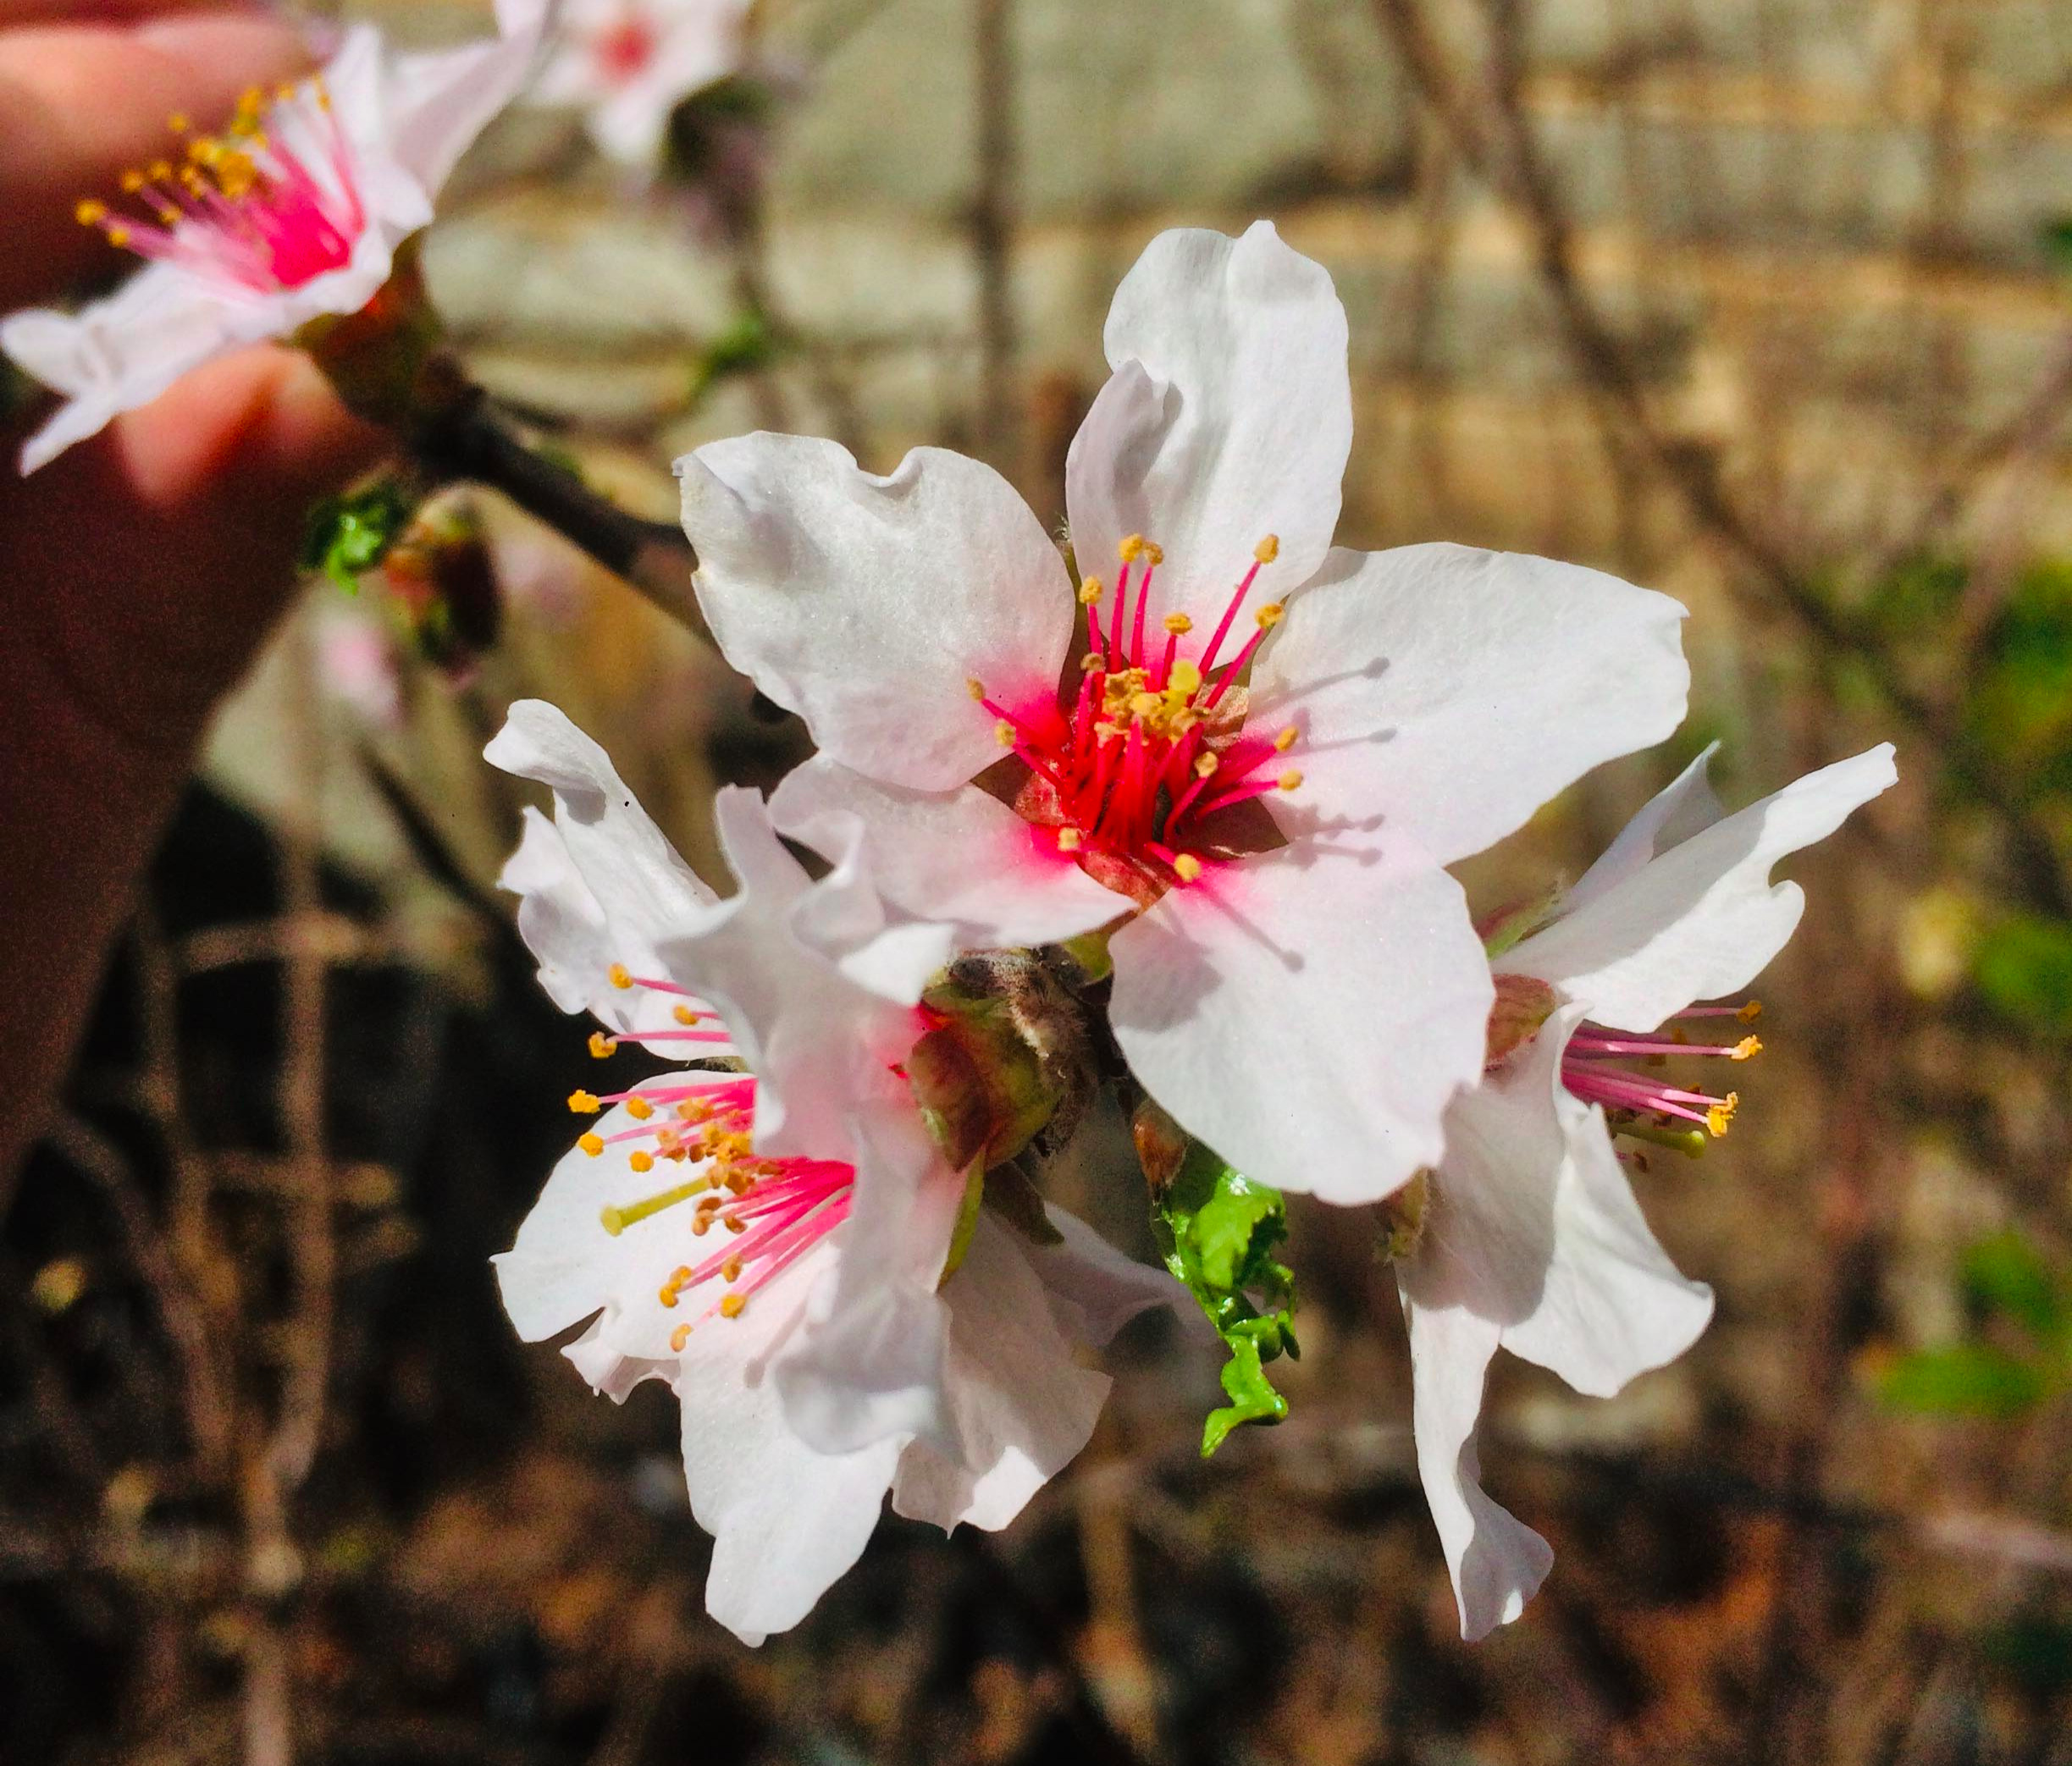 Blossoms from Javid's Iranian almond - a cold hardy variety that can grow as far north as zone 5 (southern Vermont and Maine)